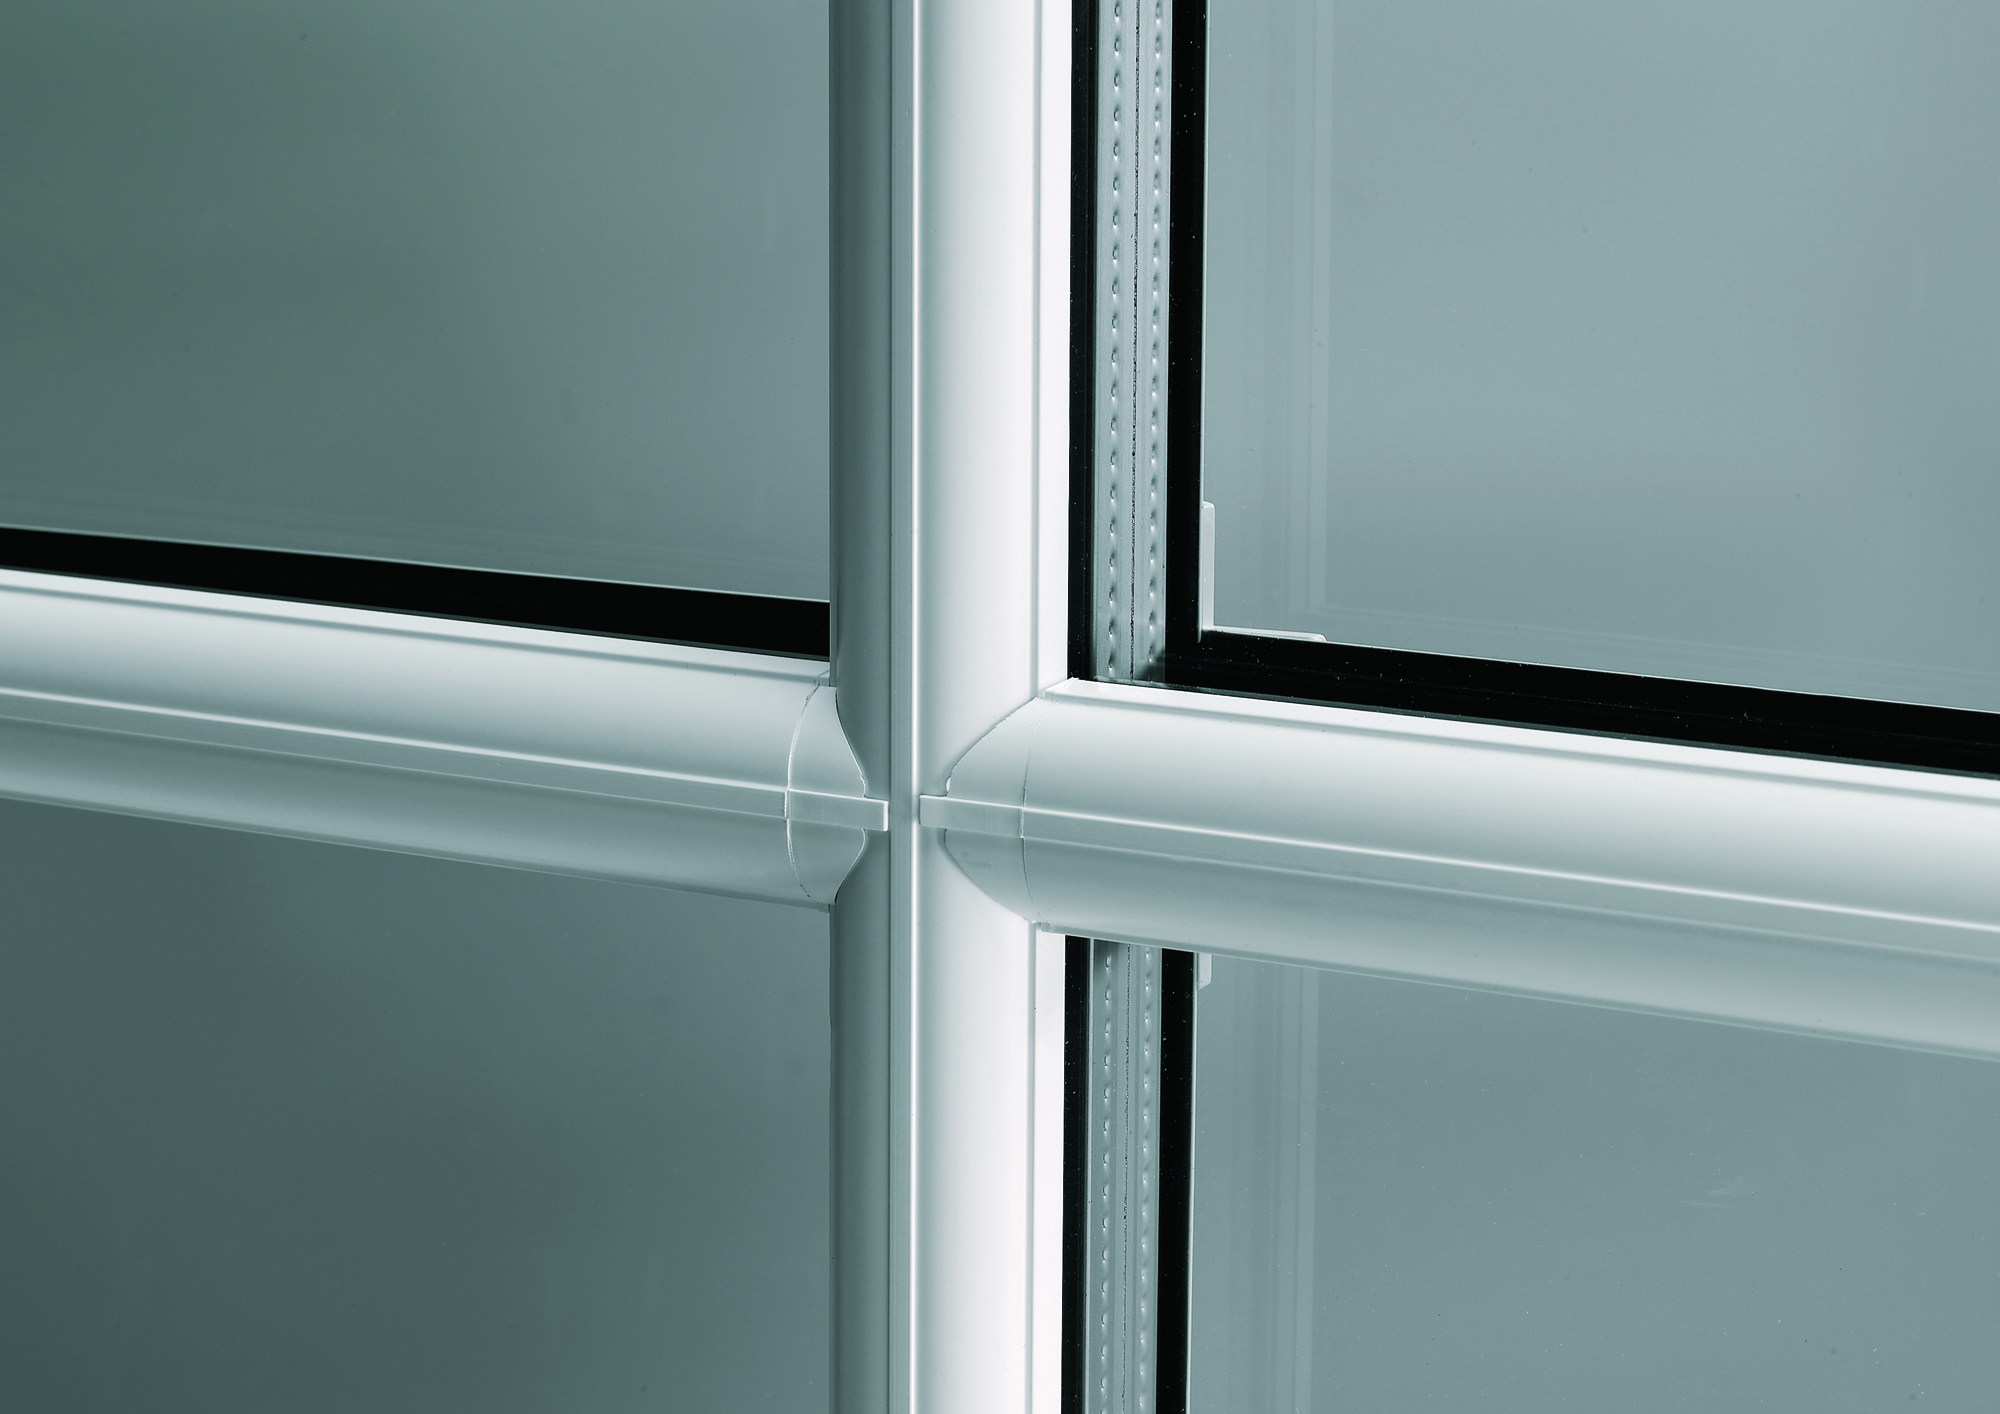 Fret Bar Windows Direct Window Co